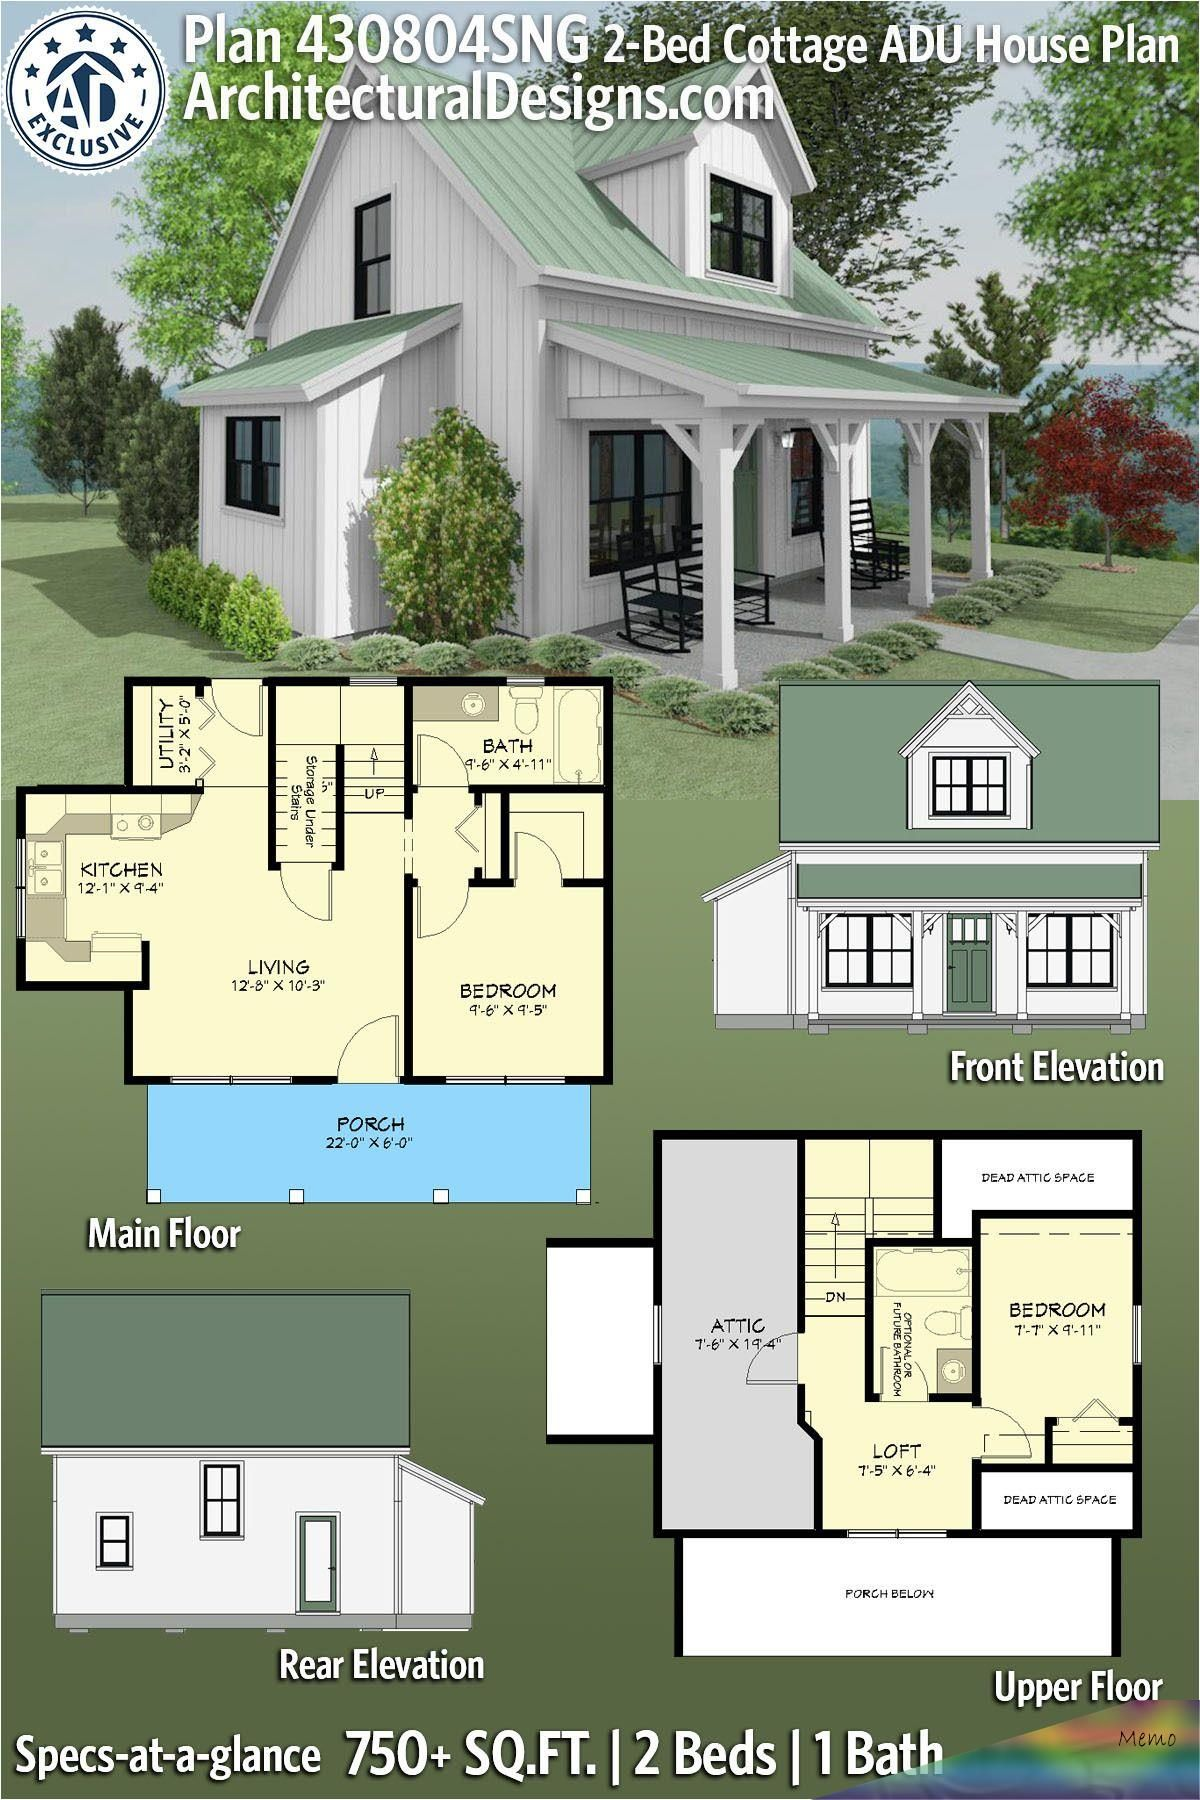 Pin By Victoria Kirkham On House Plans In 2020 Sims House Plans Small Home Plan House Plans Farmhouse